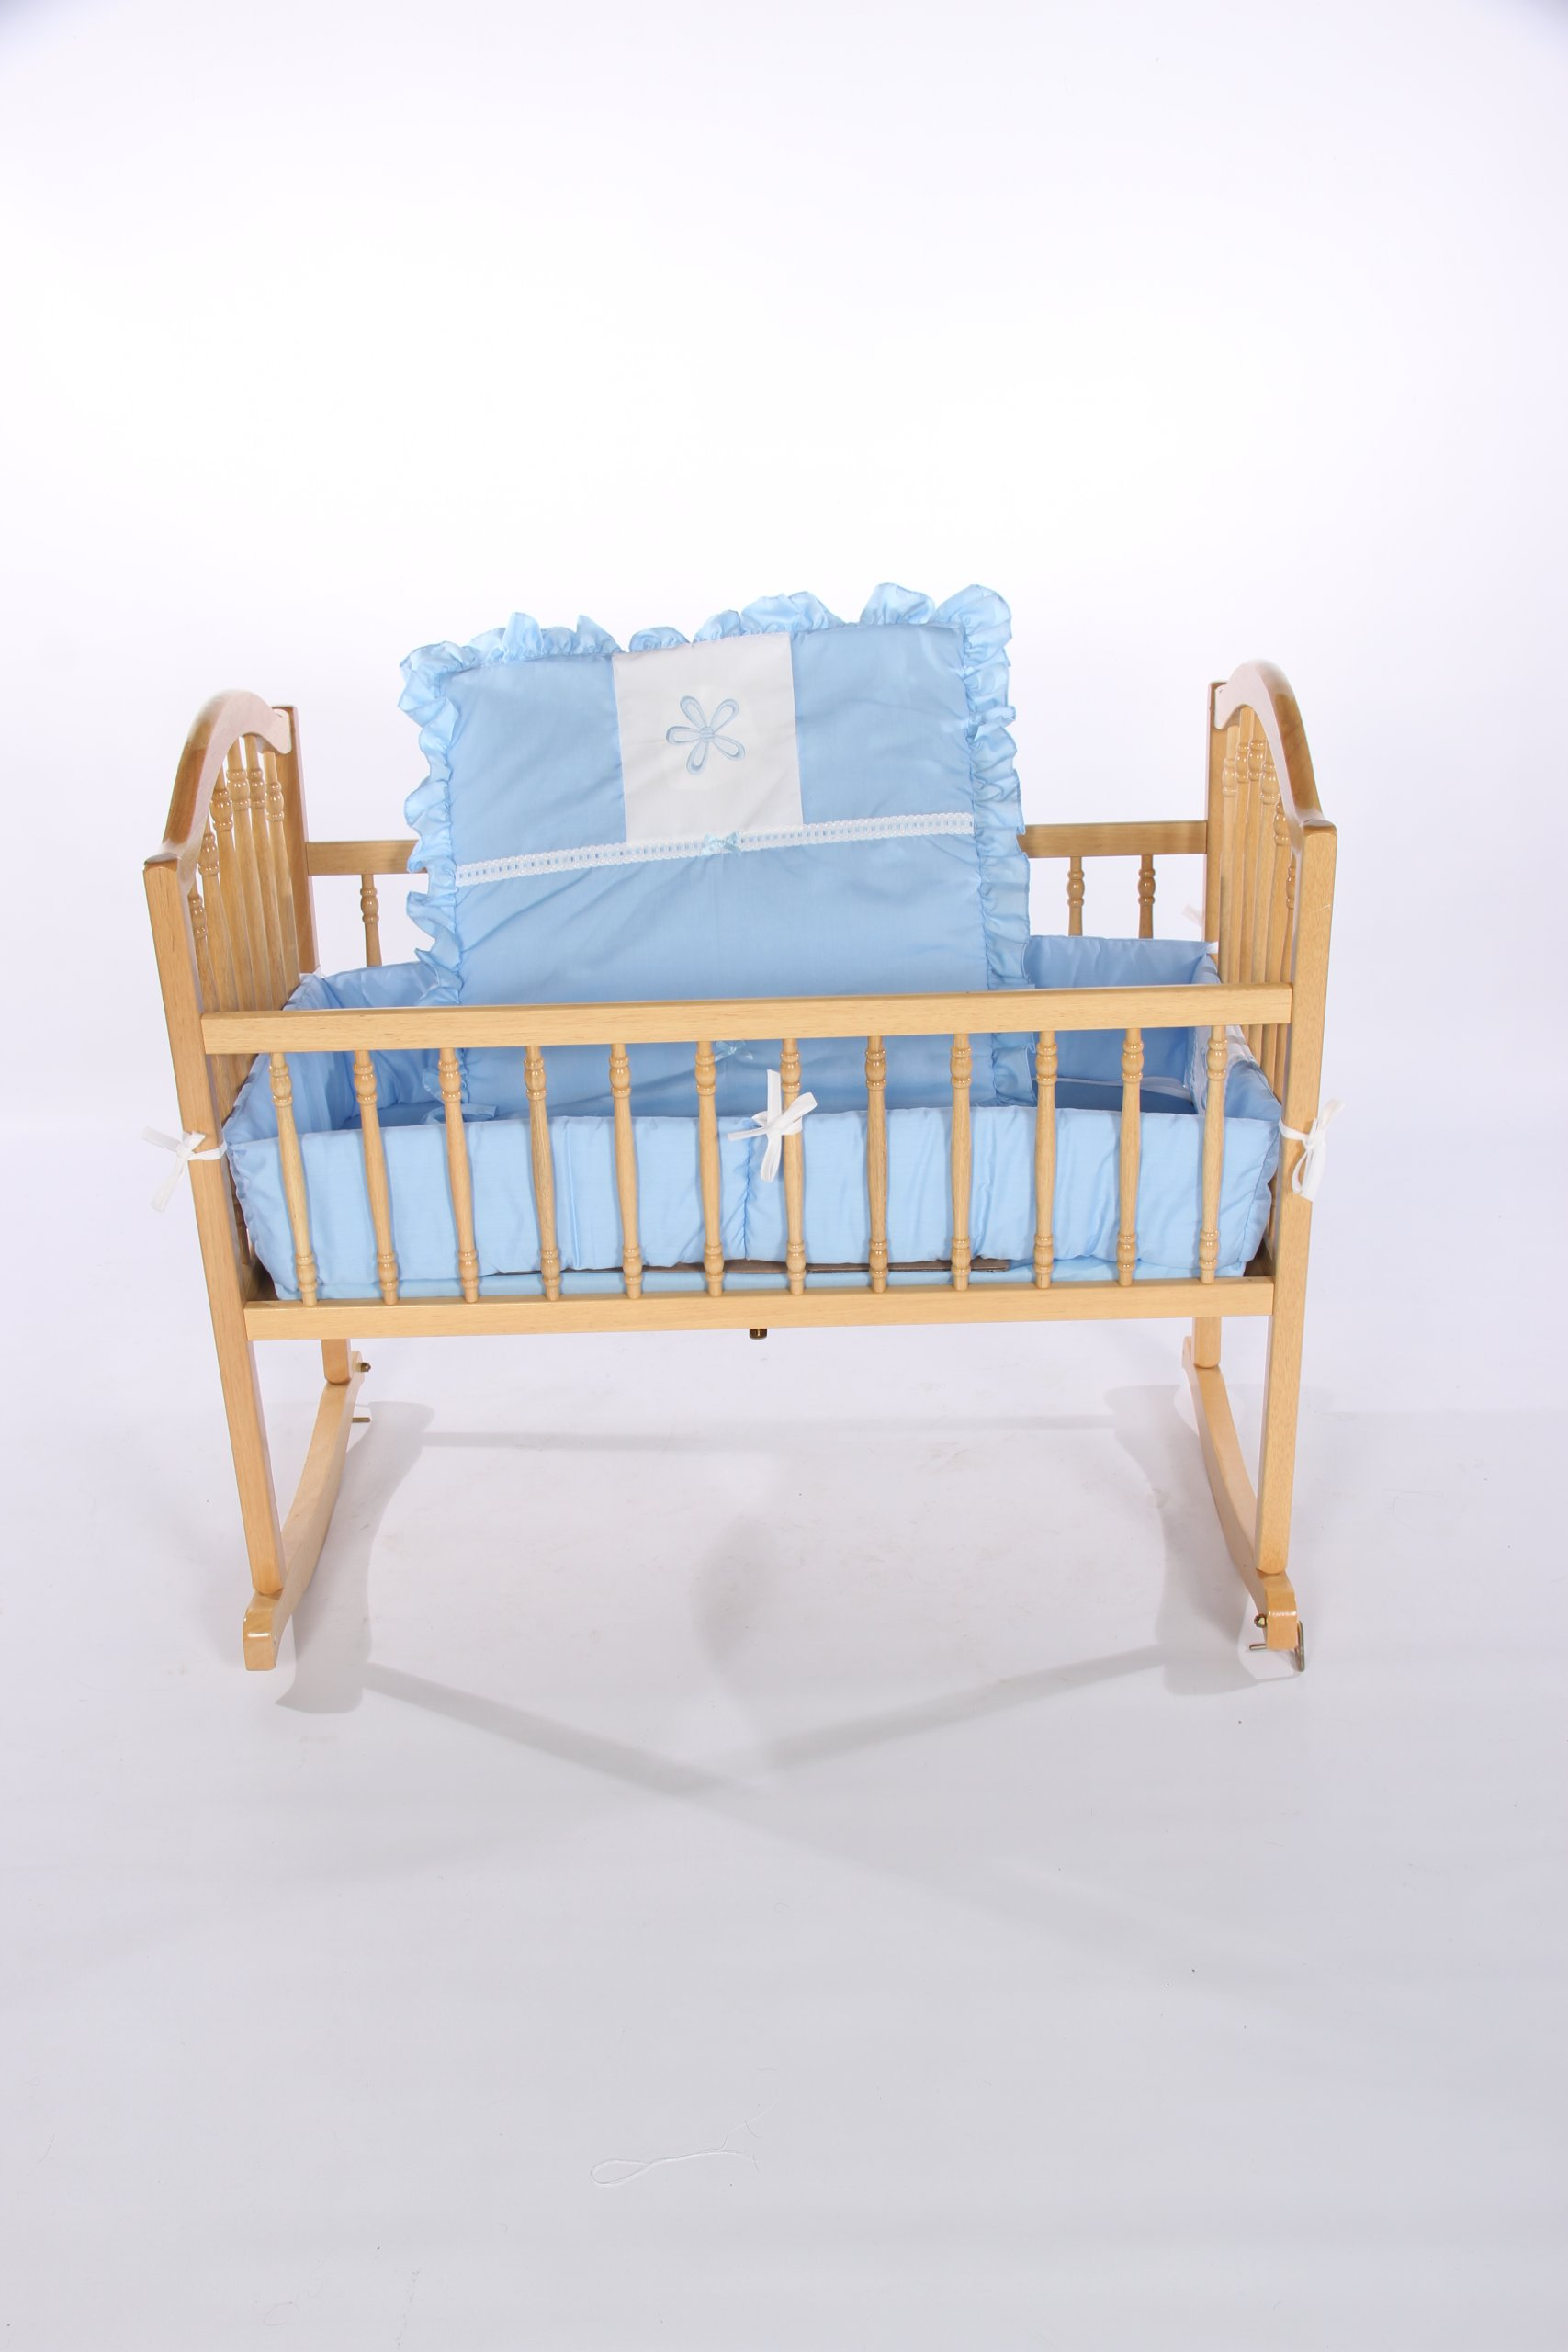 Baby Doll Bedding Solid with Flower Applique Cradle Bedding Set, Blue